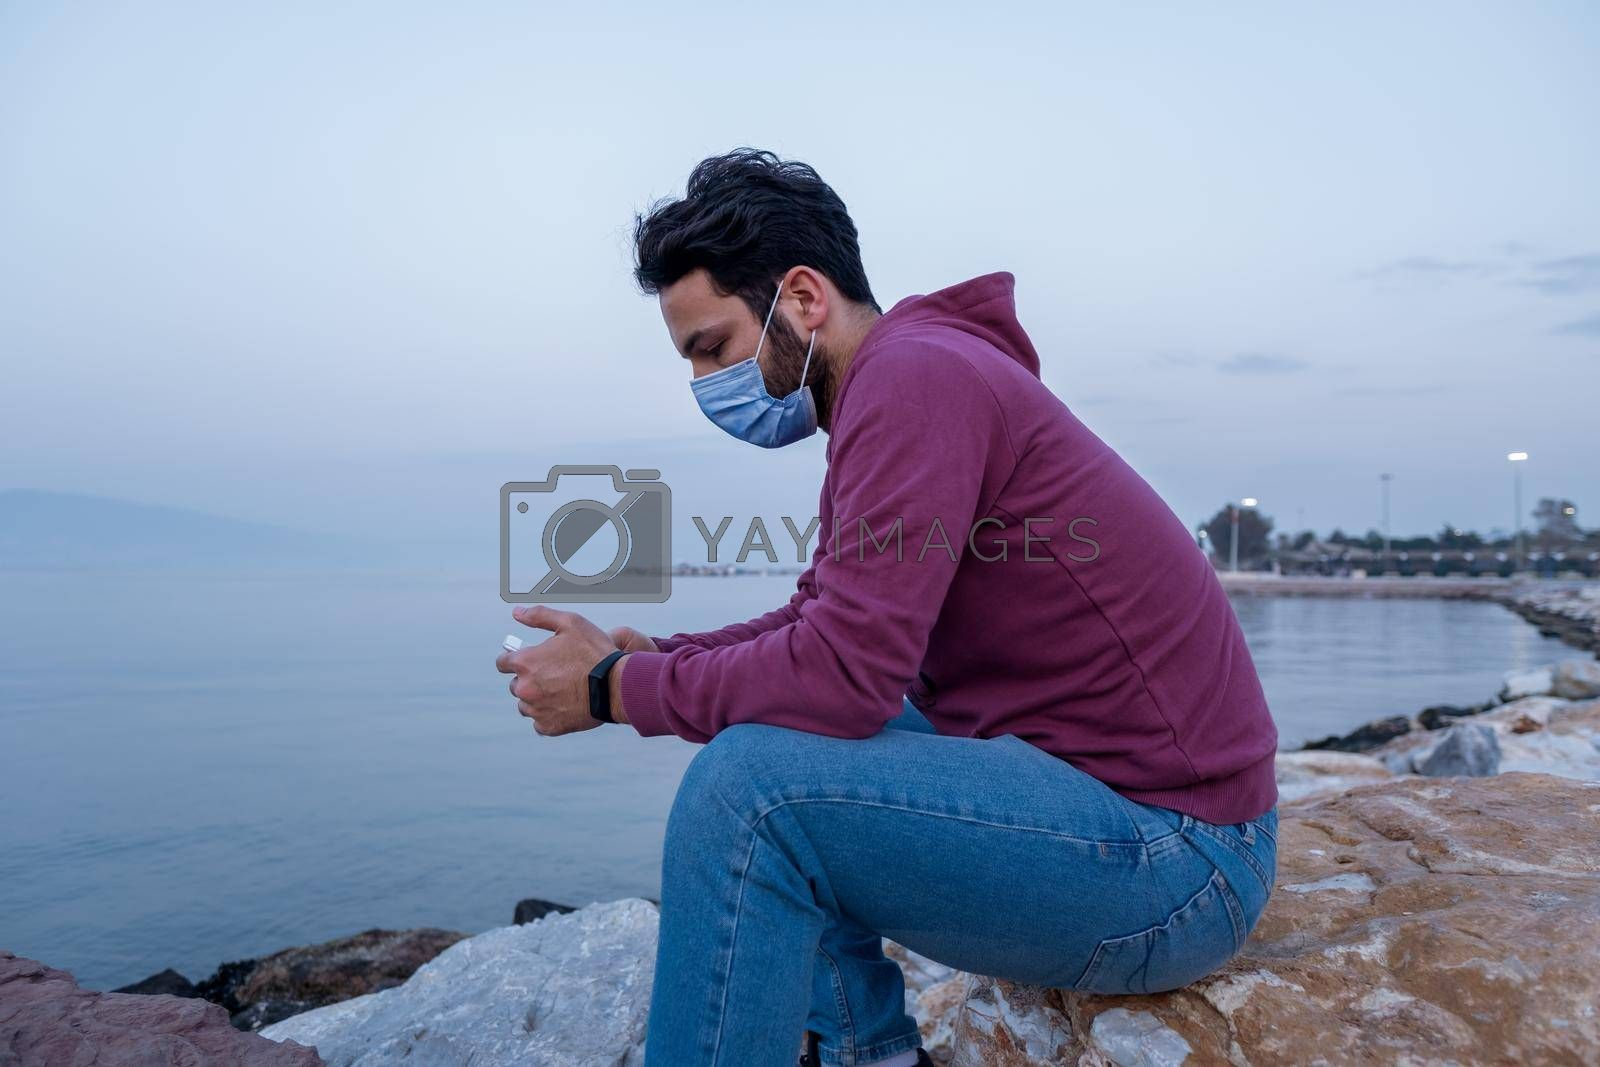 alone one male person sitting ashore and looking at phone screen and checking internet